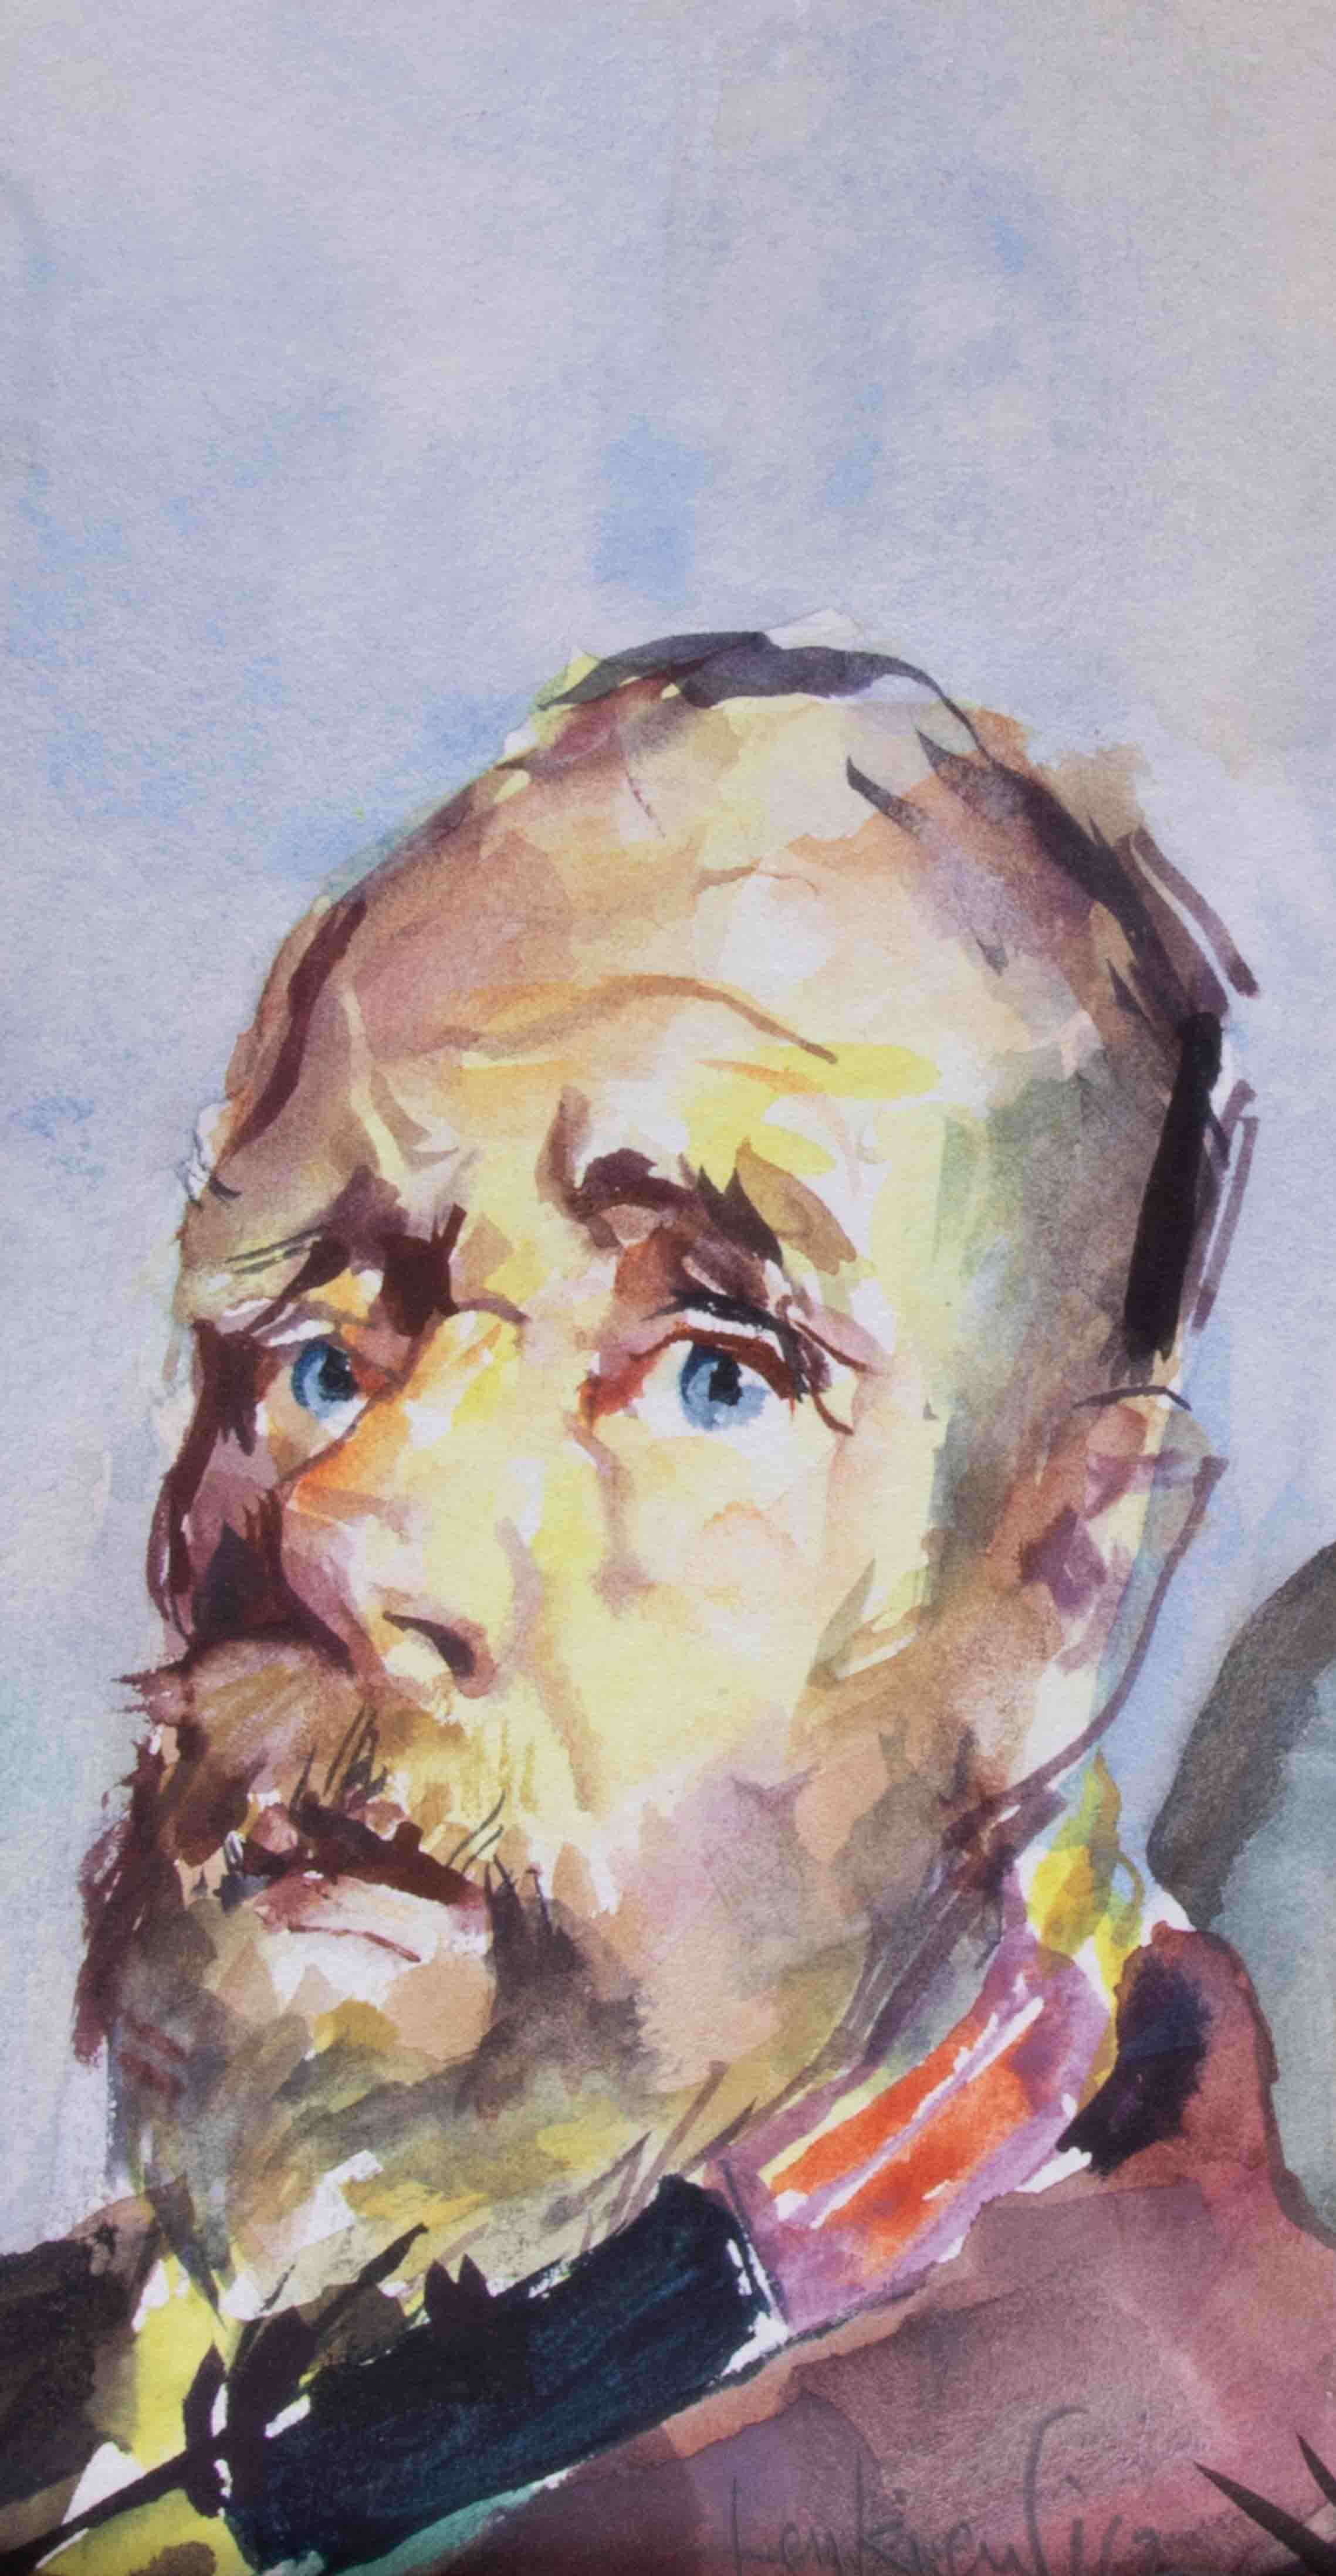 Robert Lenkiewicz (1941-2002), 'The Bishop' watercolour, signed, 16cm x 9cm, unframed. The vagrant - Image 2 of 2